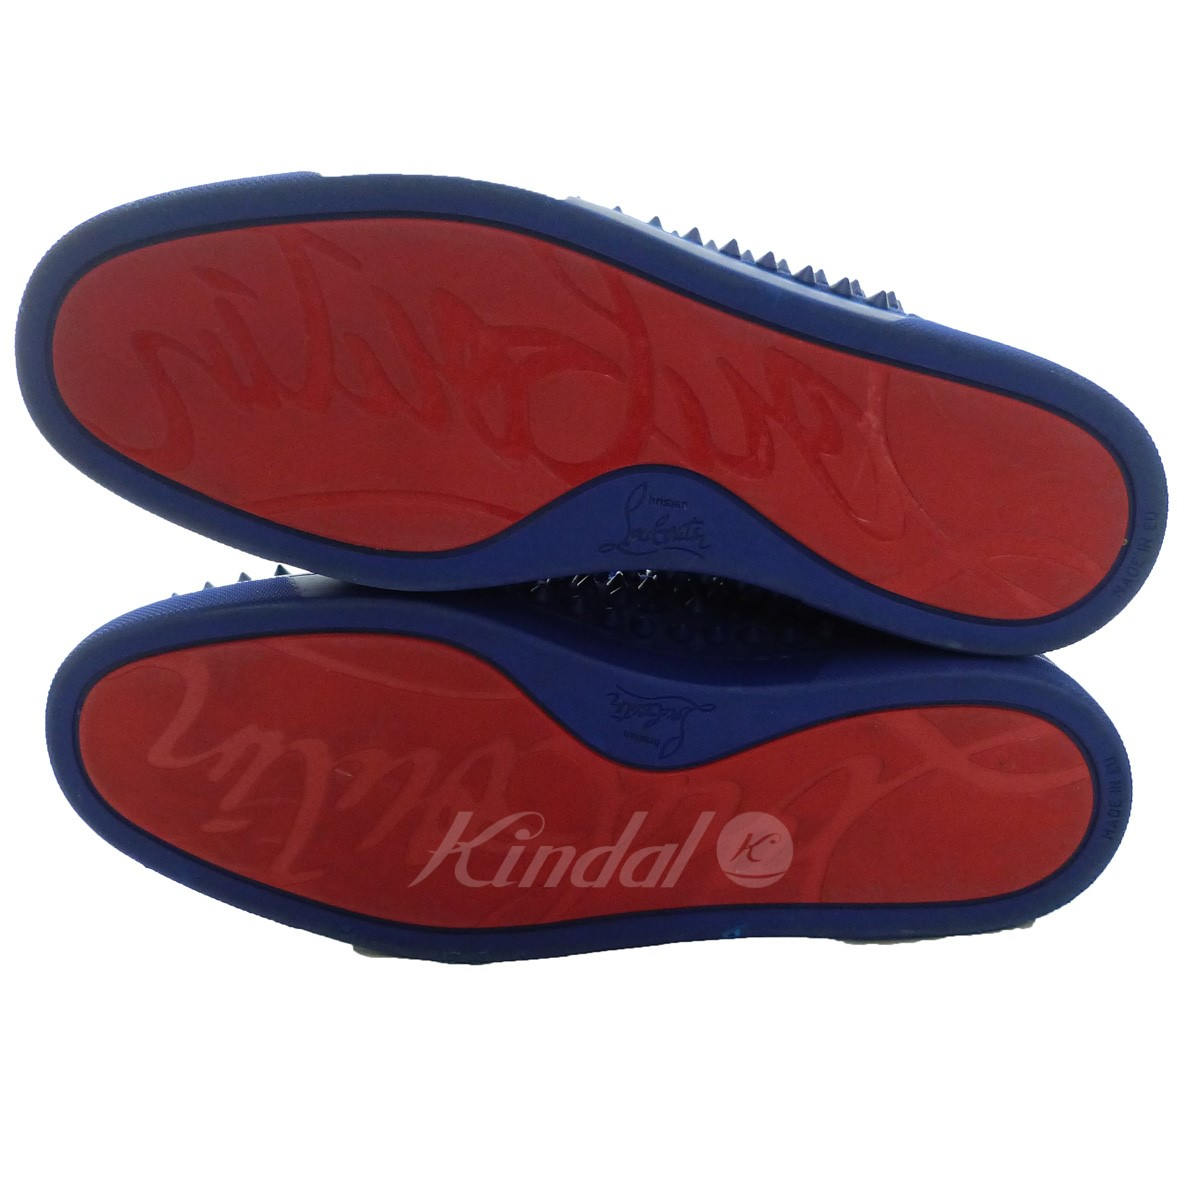 Christian Louboutin 17ss Louis Spikes Mens Flat Higher Frequency Elimination Sneakers Blue Size 43 クリスチャンルブタン